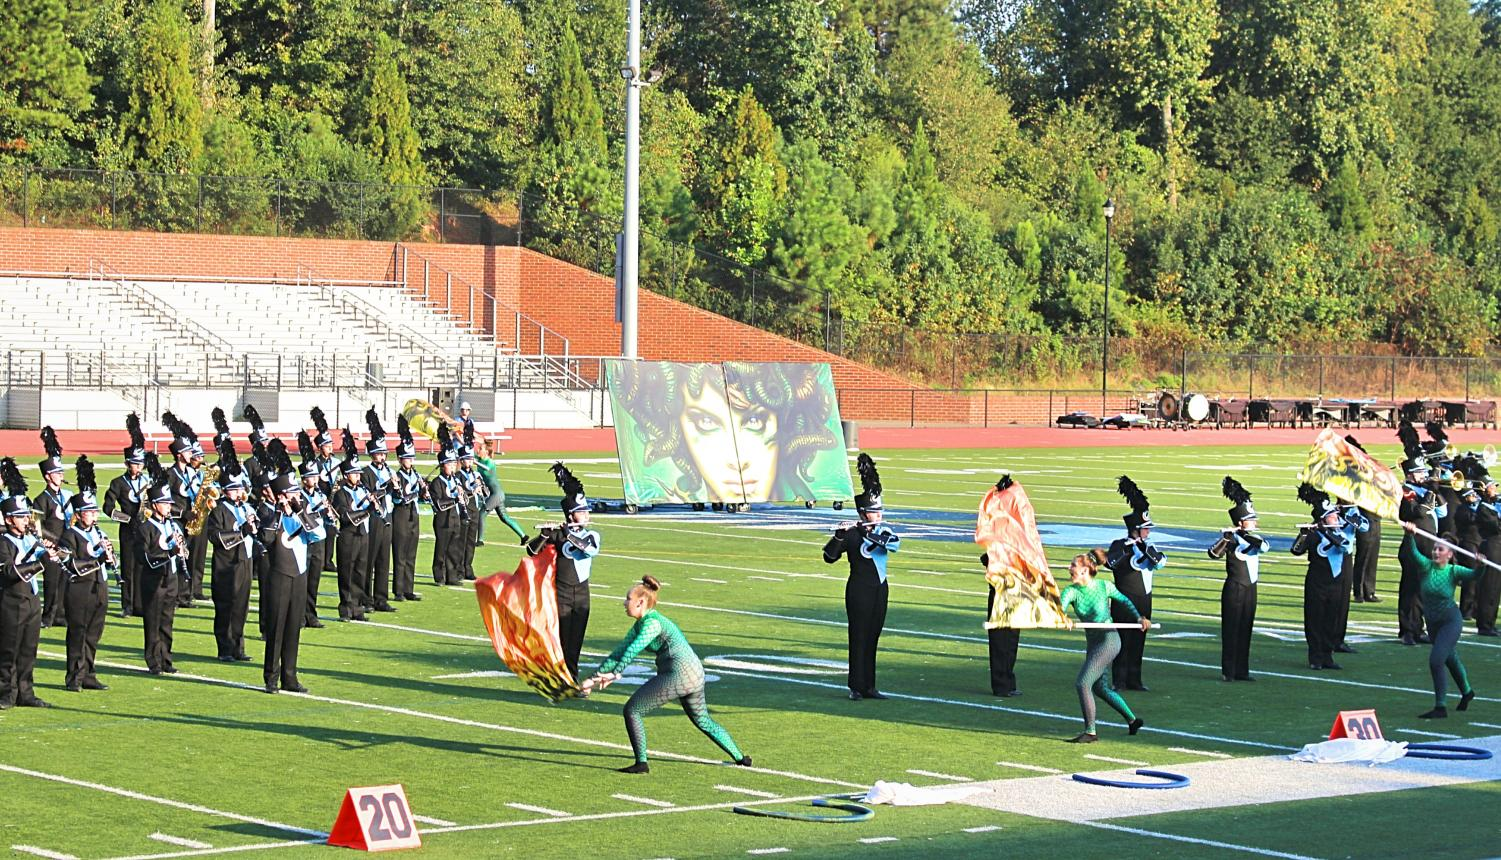 The Cambridge marching band was among 14 ensembles performing at the Fulton County Marching Exhibition on Saturday.